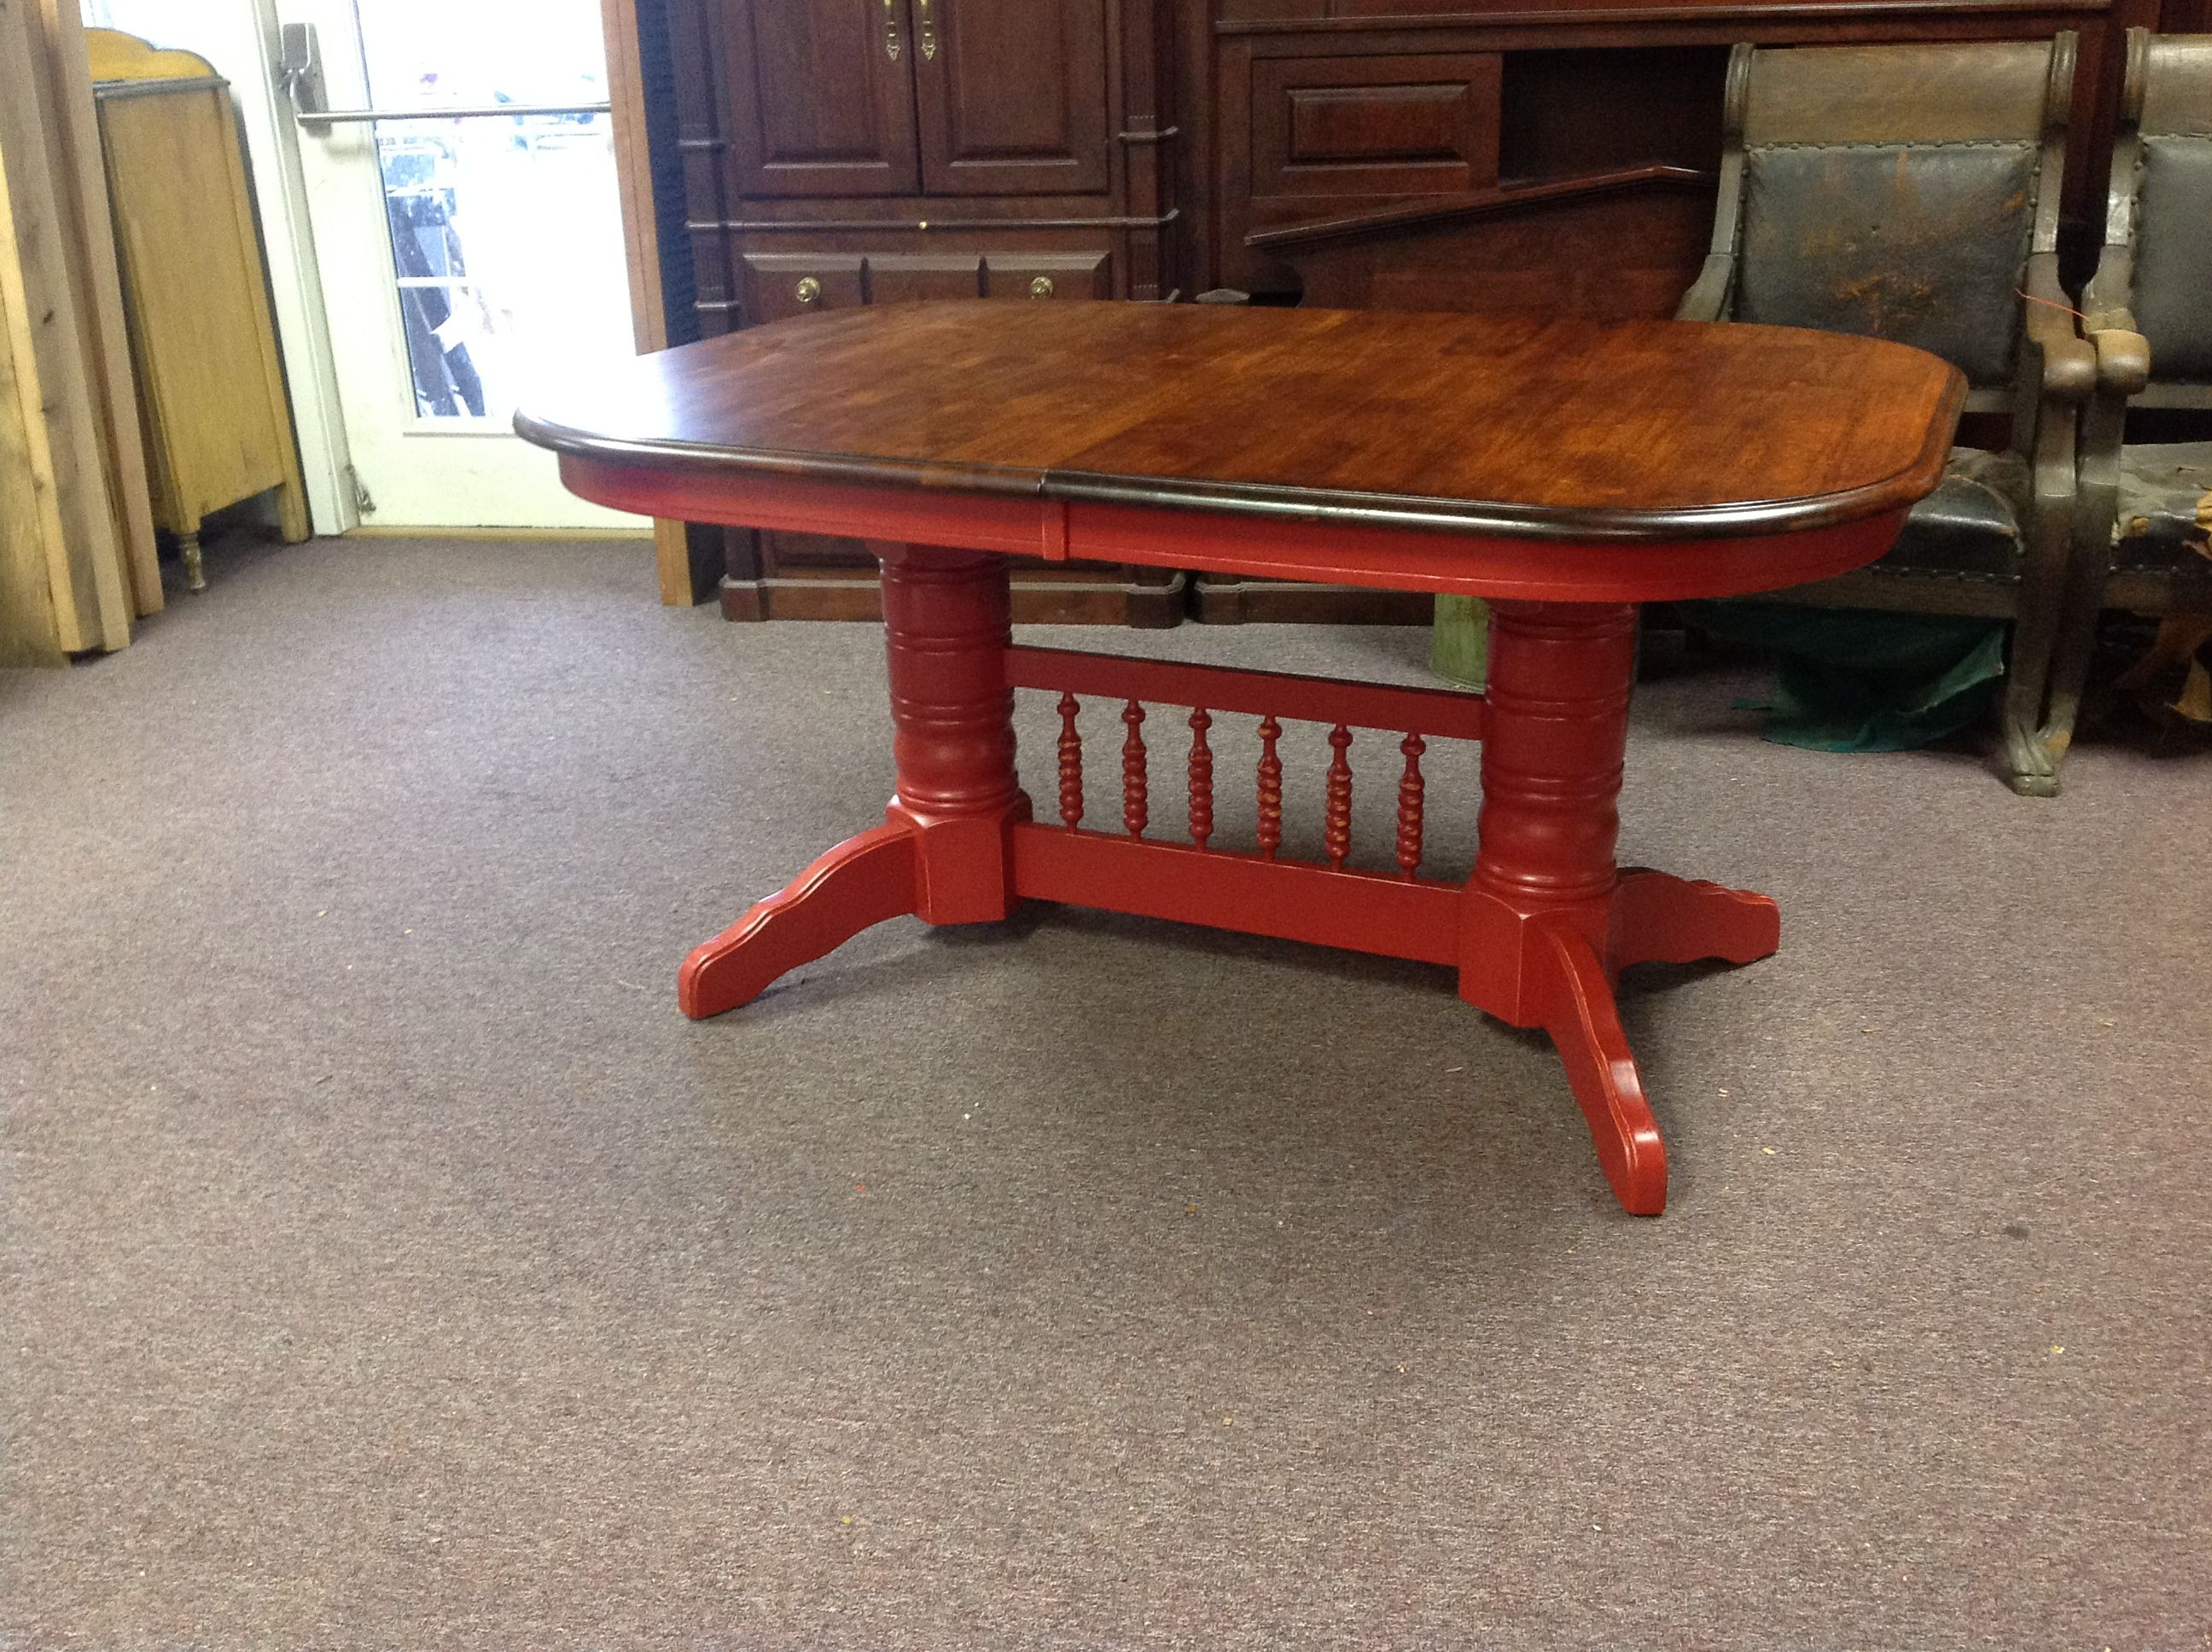 We completely redid this table! It was originally stained very light natural color and had a broken leg. We fixed the leg, painted the bottom and stained the top dark, it turned out beautiful!